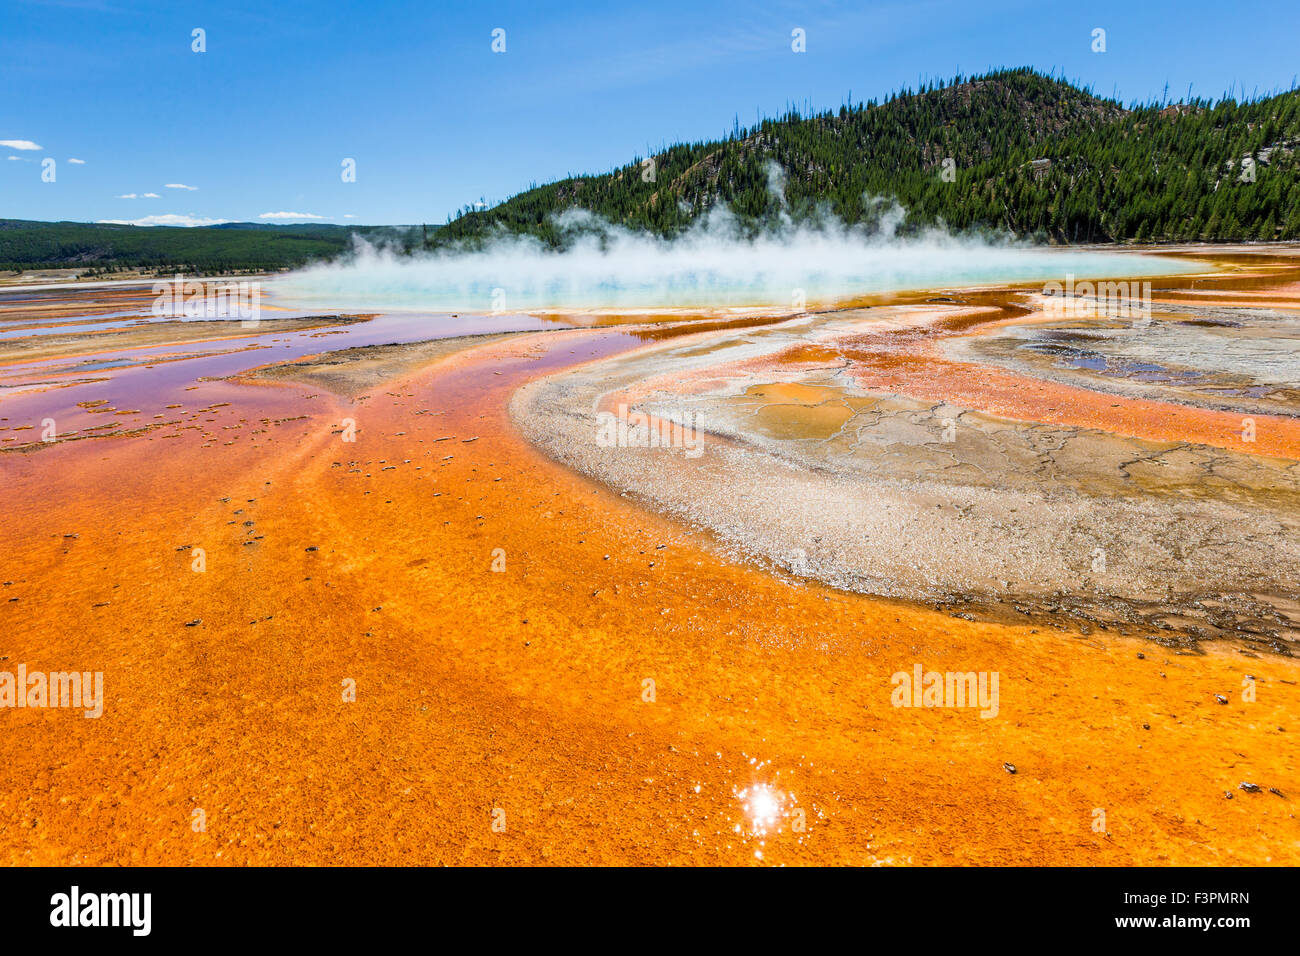 Grand Prismatic Spring; Midway Geyser Basin, Yellowstone National Park, Wyoming, USA - Stock Image